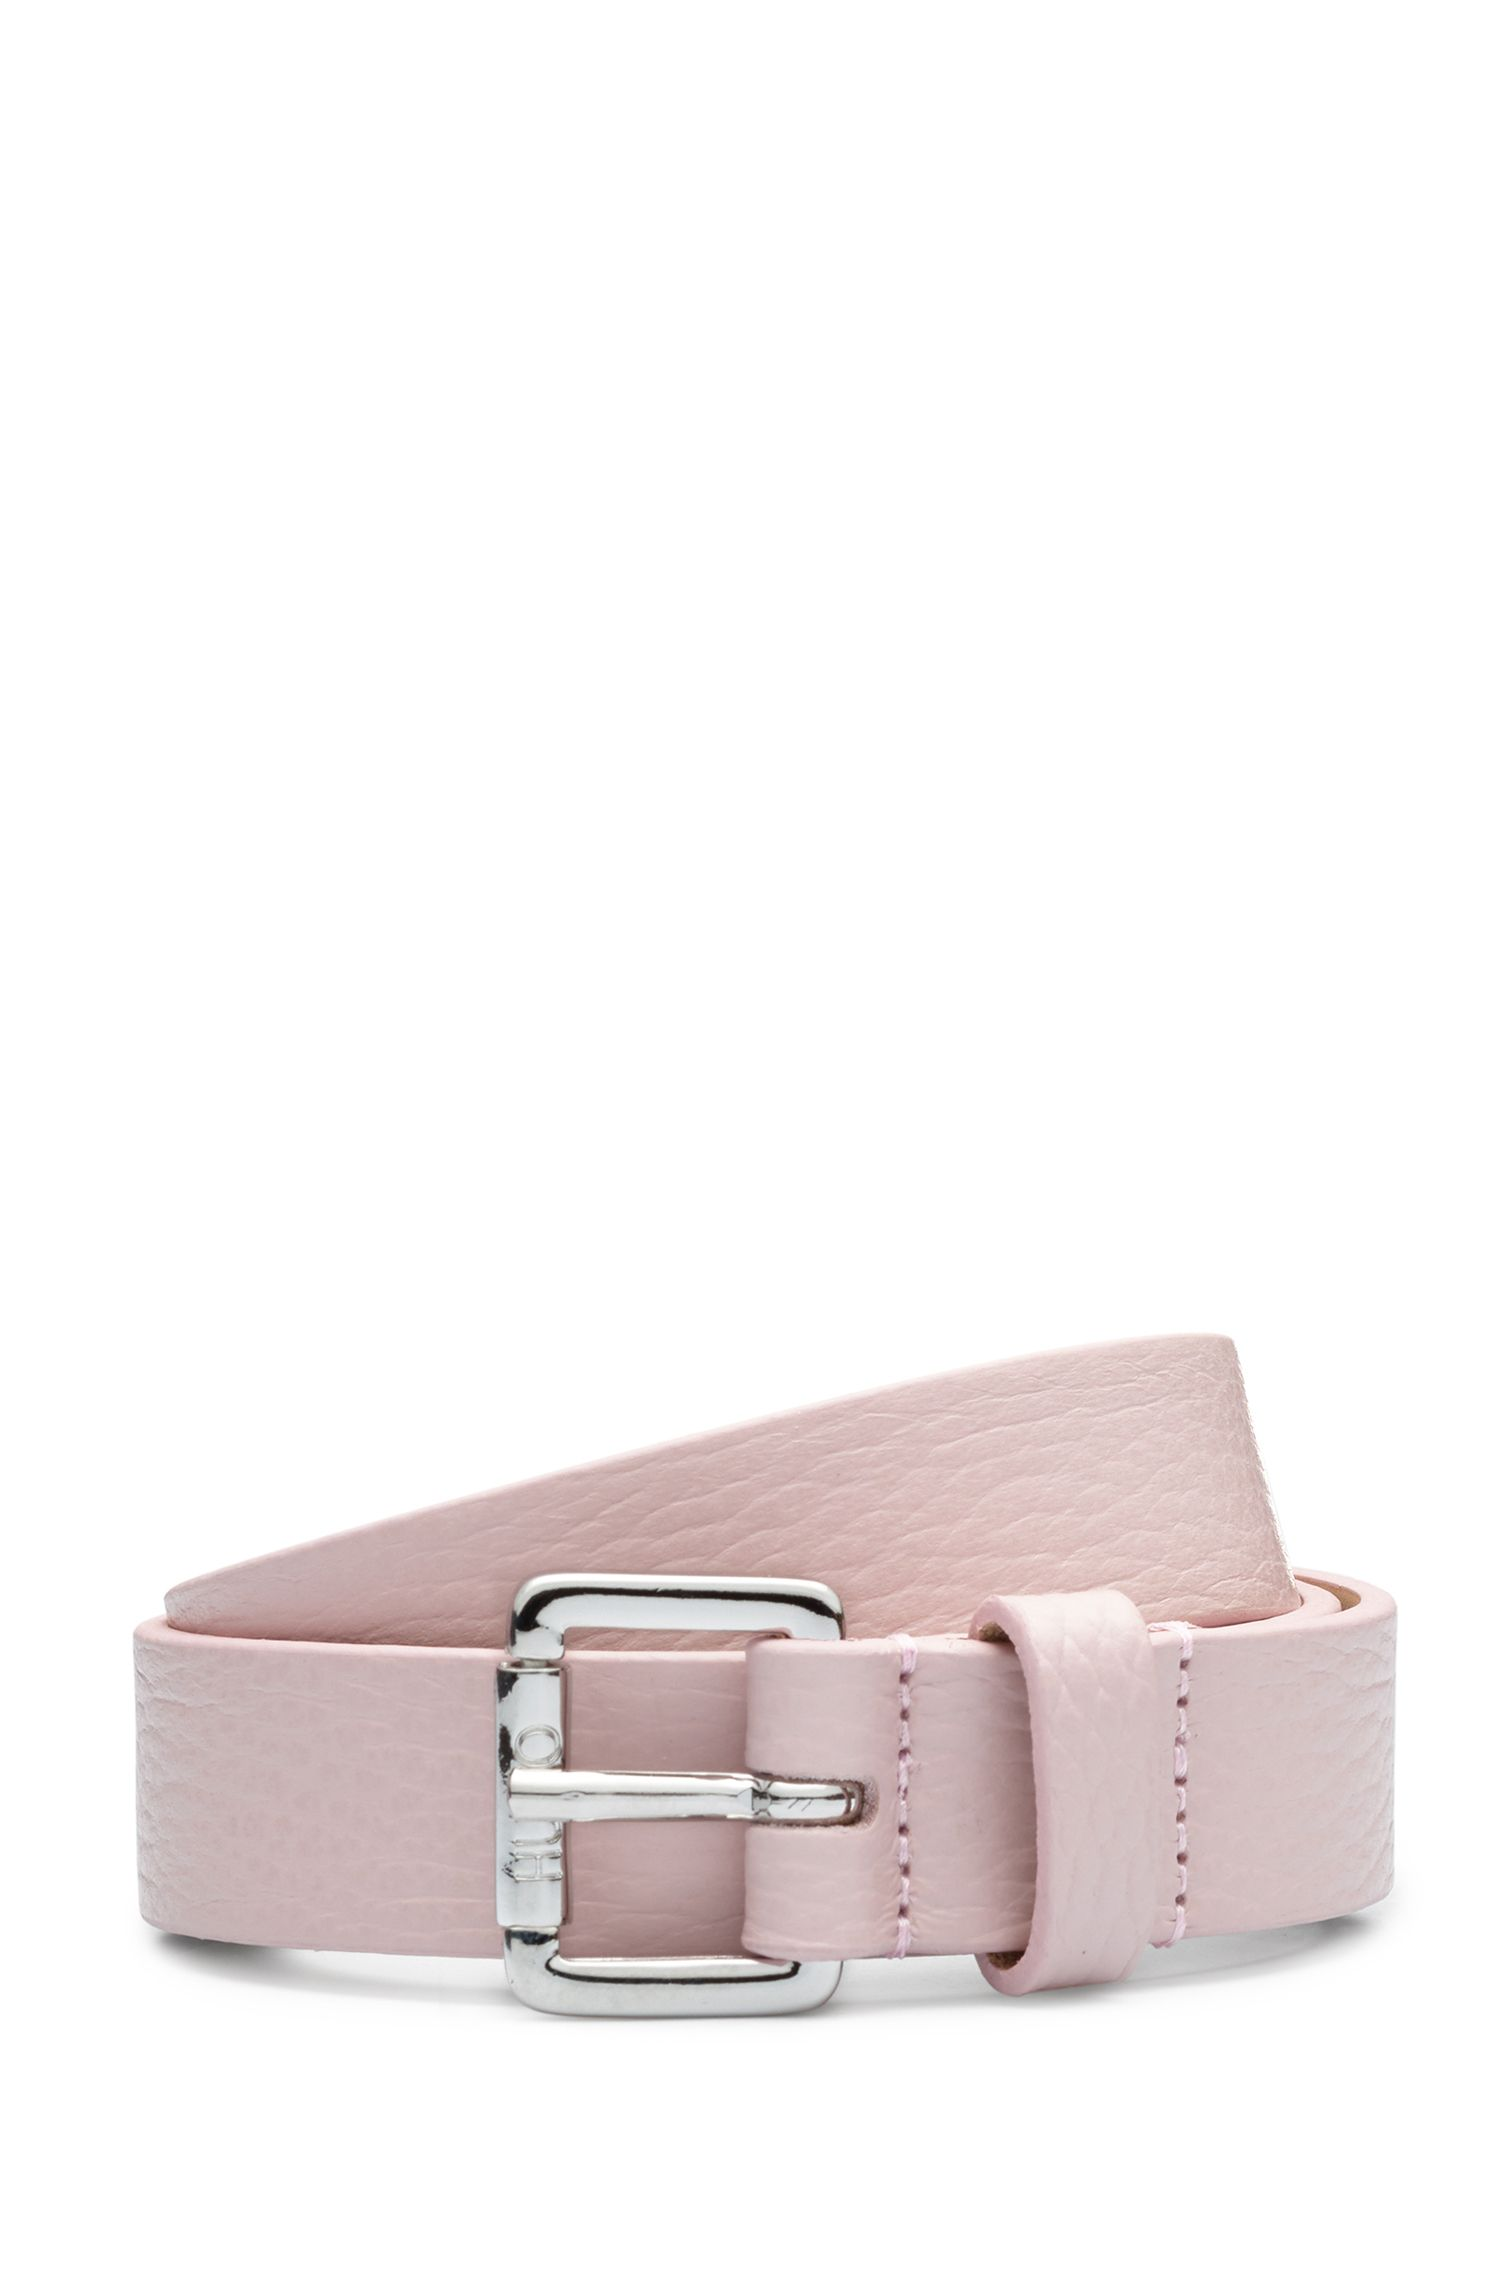 Italian-leather belt with polished buckle, light pink